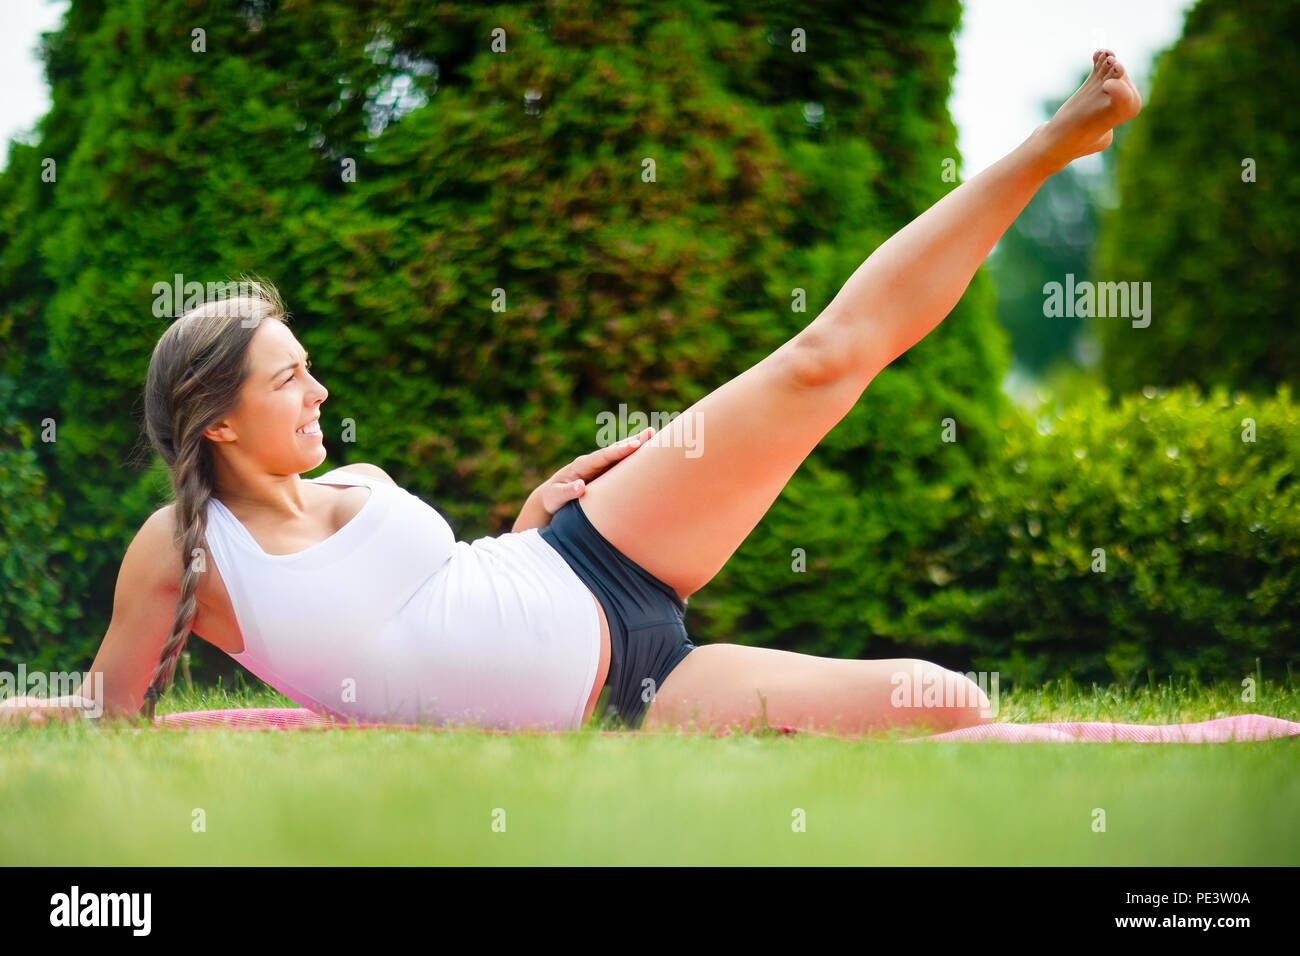 Expectant Woman Performing Side Reclining Leg Lift On Yoga Mat - Stock Image